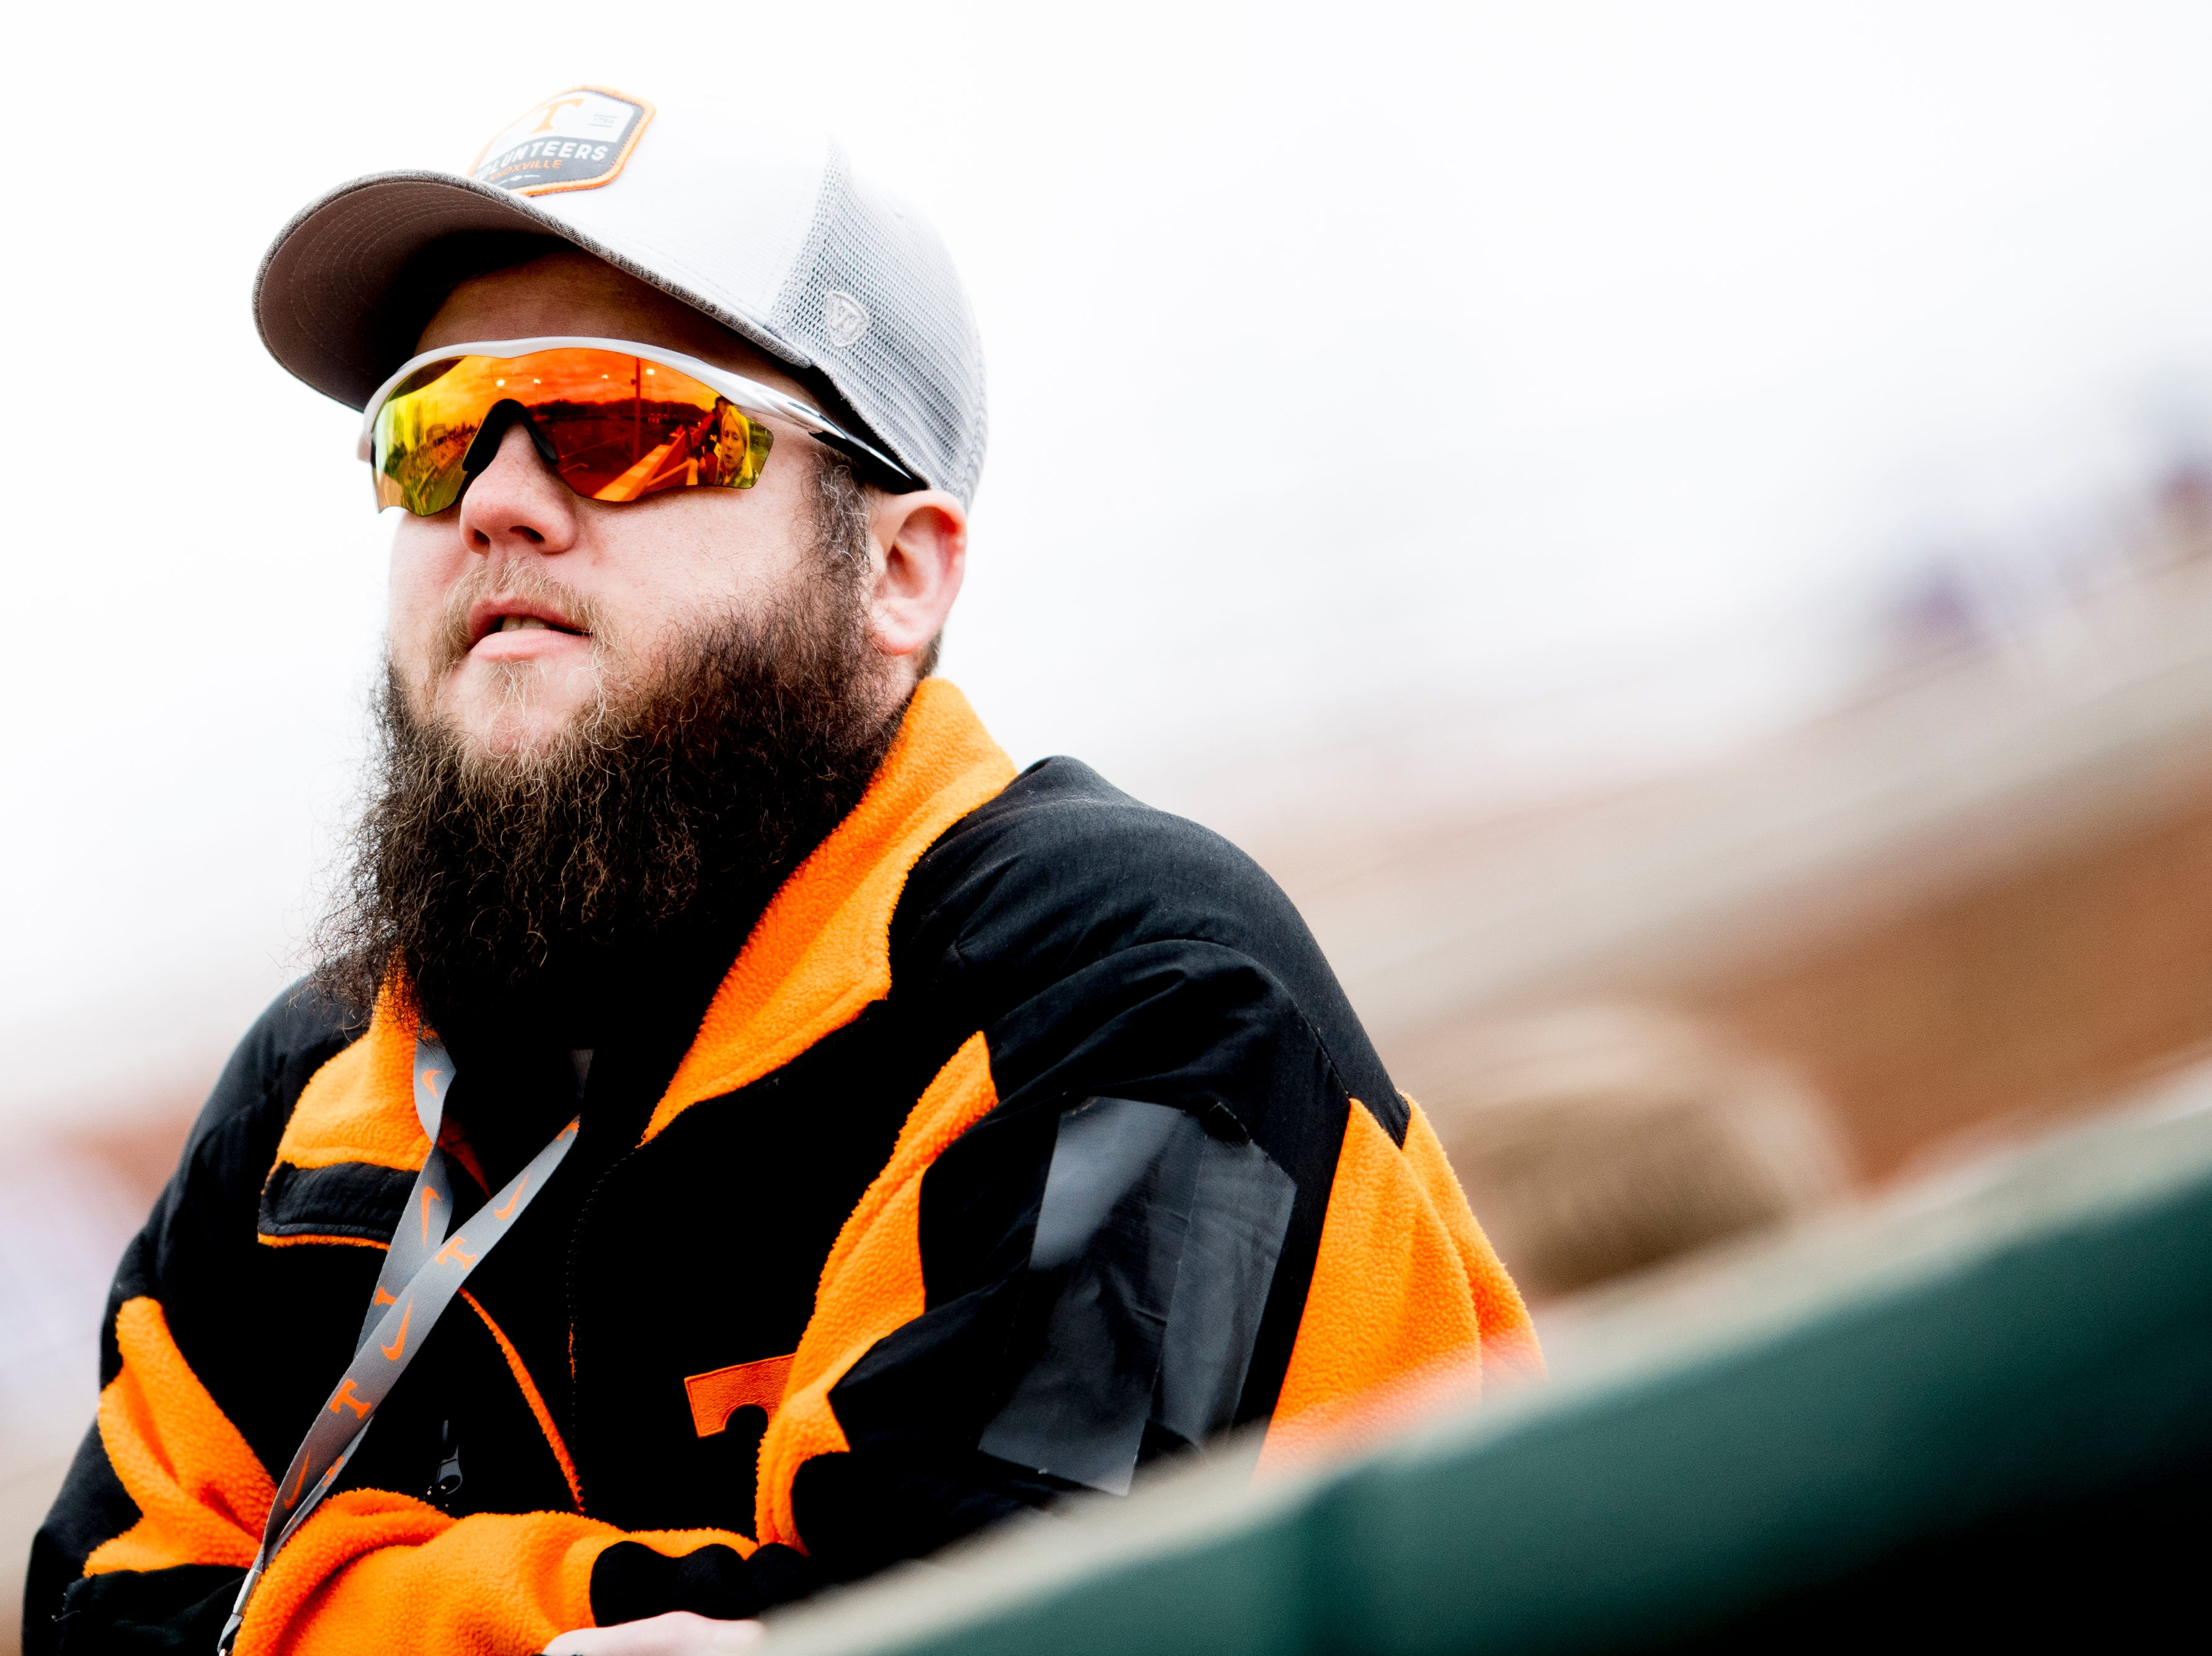 A Tennessee fan watches the game action during a Tennessee baseball home opener game against Appalachian State at Lindsey Nelson Stadium in Knoxville, Tennessee on Saturday, February 16, 2019.